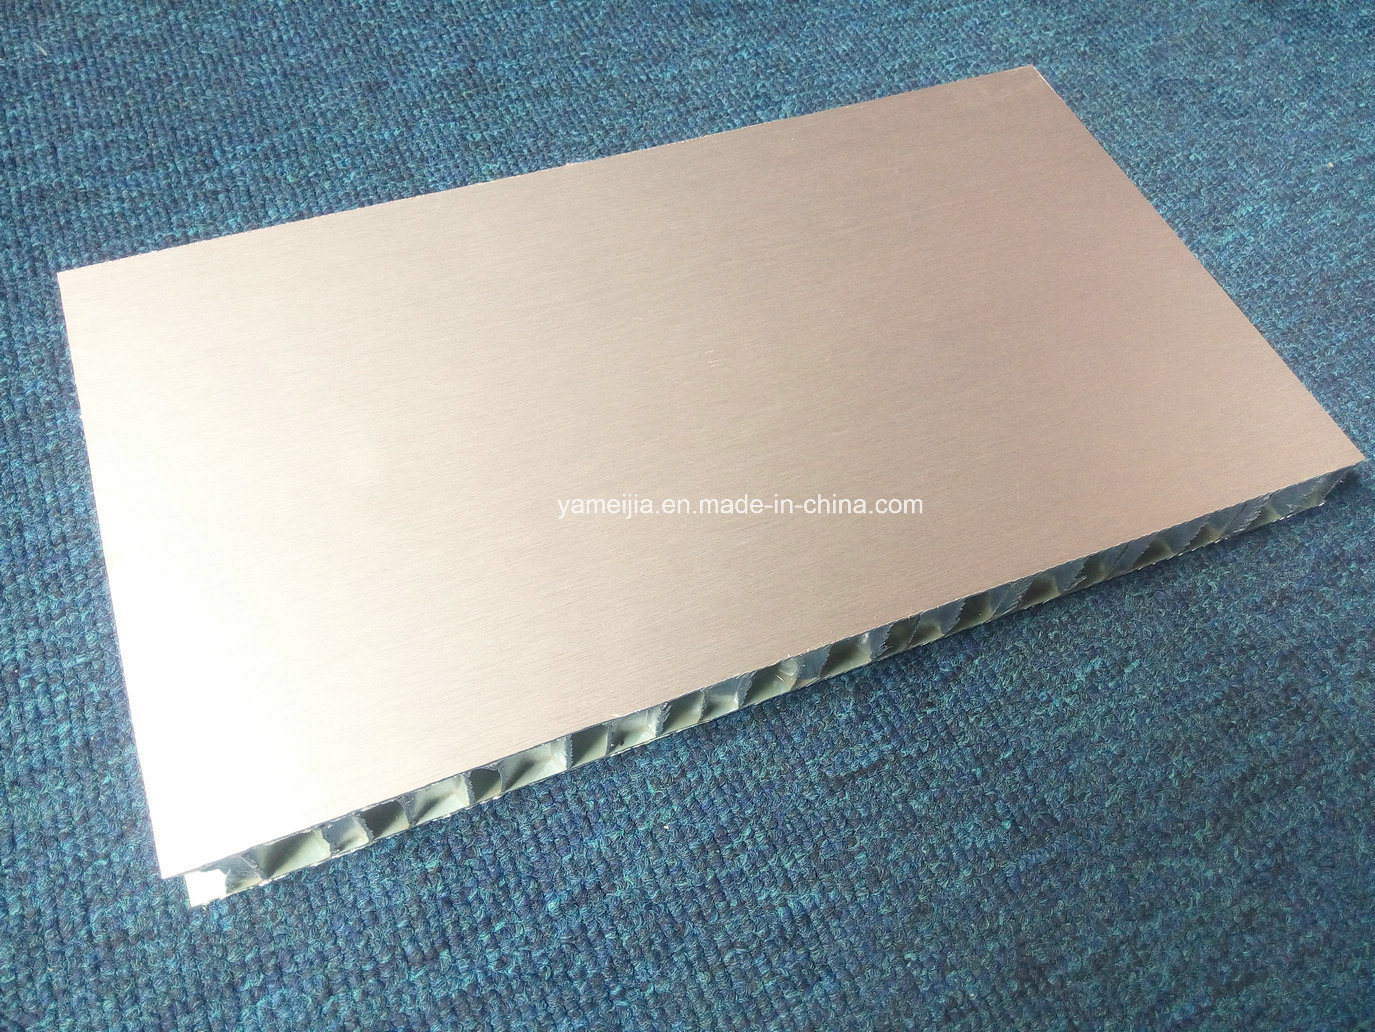 15 Years Warranty PVDF Coated Aluminum Honeycomb Panels for External Facades